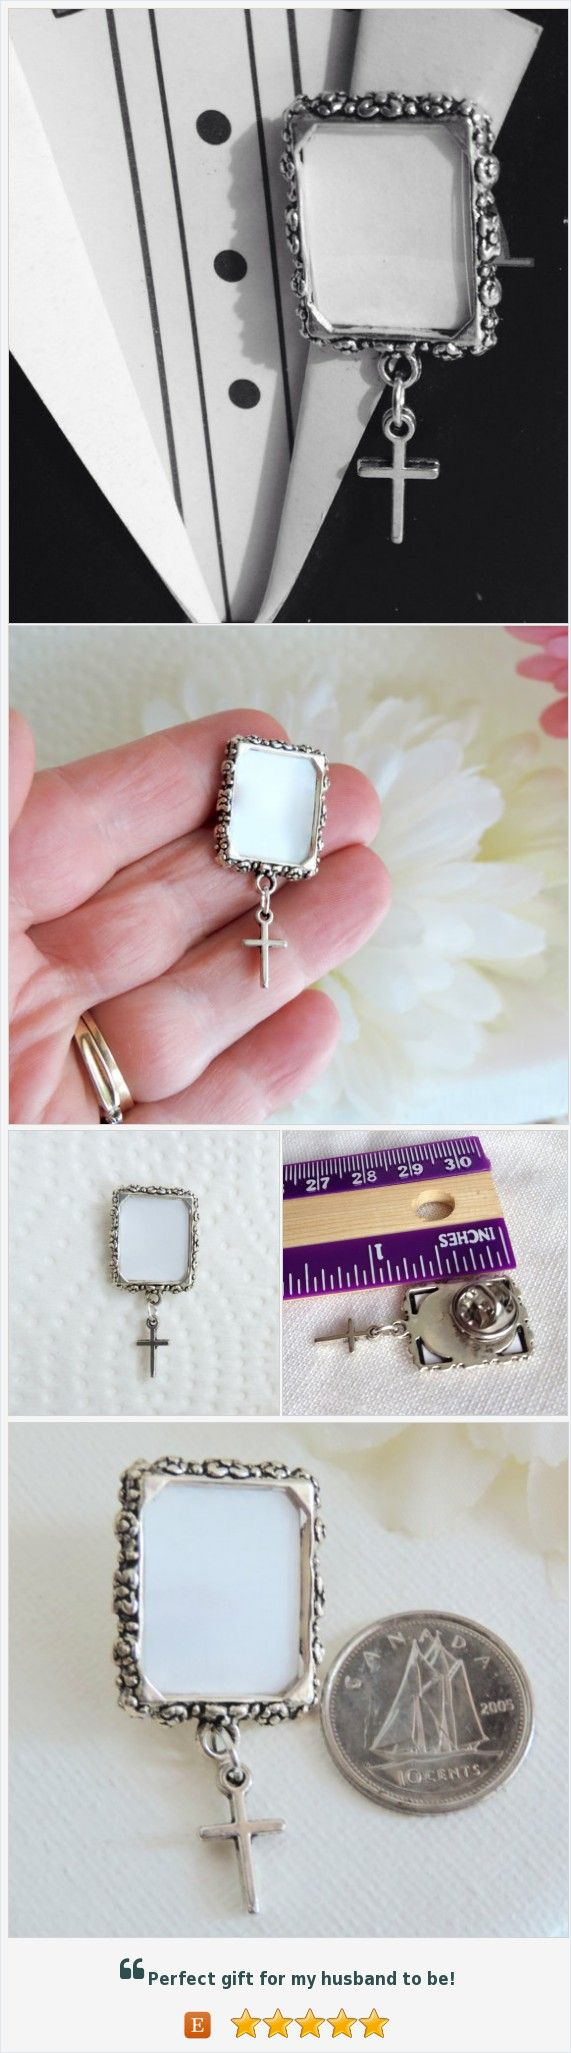 Memorial pin. Photo lapel pin with tiny cross. Small picture frame lapel pin or tie pin. Remembrance picture. DIY or I do photo. #weddings #grads #giftidea #etsymntt https://www.etsy.com/ca/SmilingBlueDog/listing/513753553/memorial-pin-photo-lapel-pin-with-tiny?ref=related-5